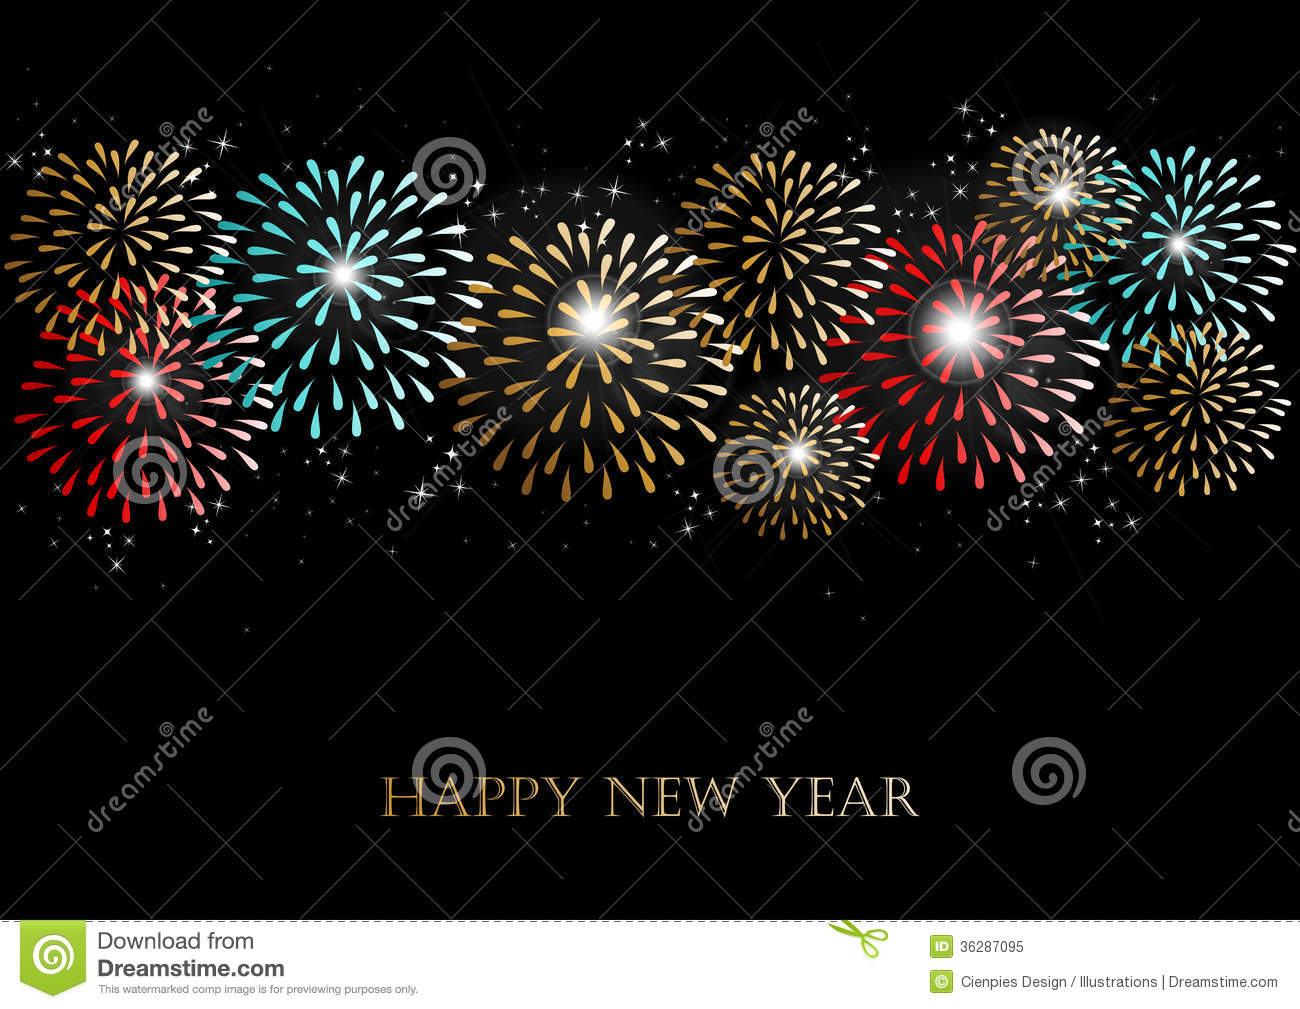 Happy New Year 2014 Fireworks Background Stock Vector Illustration